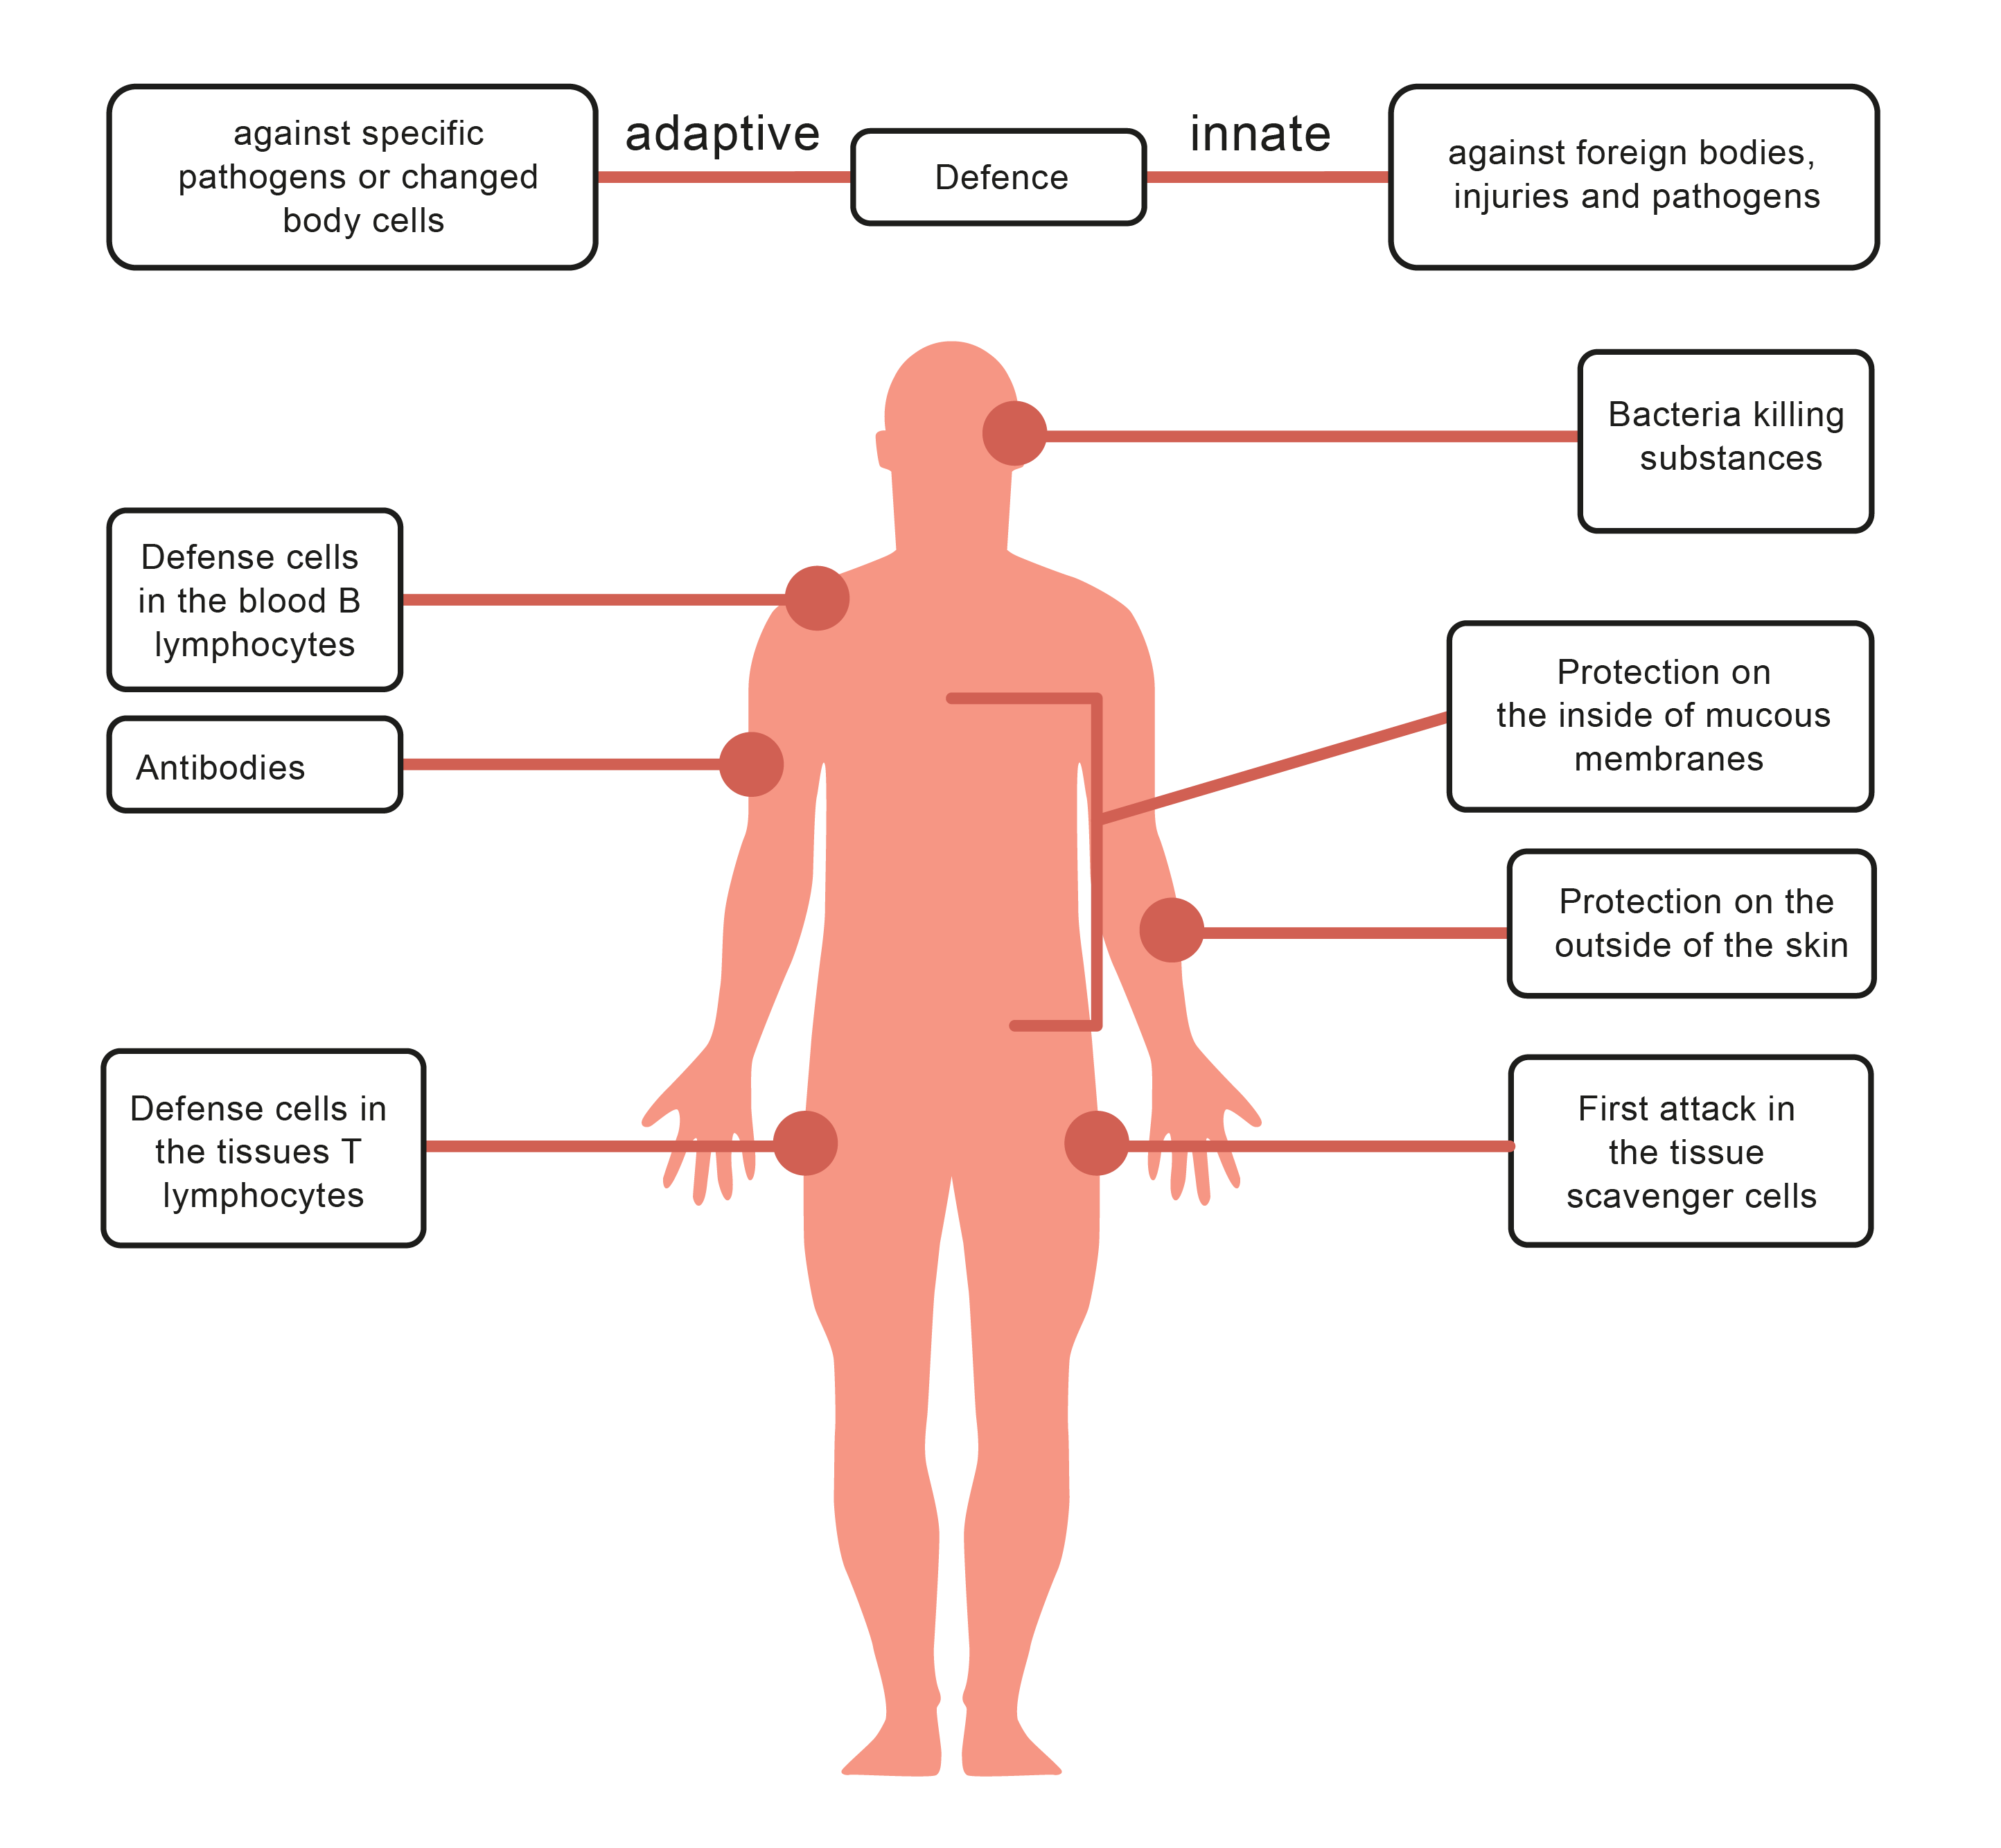 worksheet Immune System Worksheets disease and the immune system worksheet edplace look at diagram that shows ways body uses to prevent microorganisms from entering as well weapons once pathogens hav